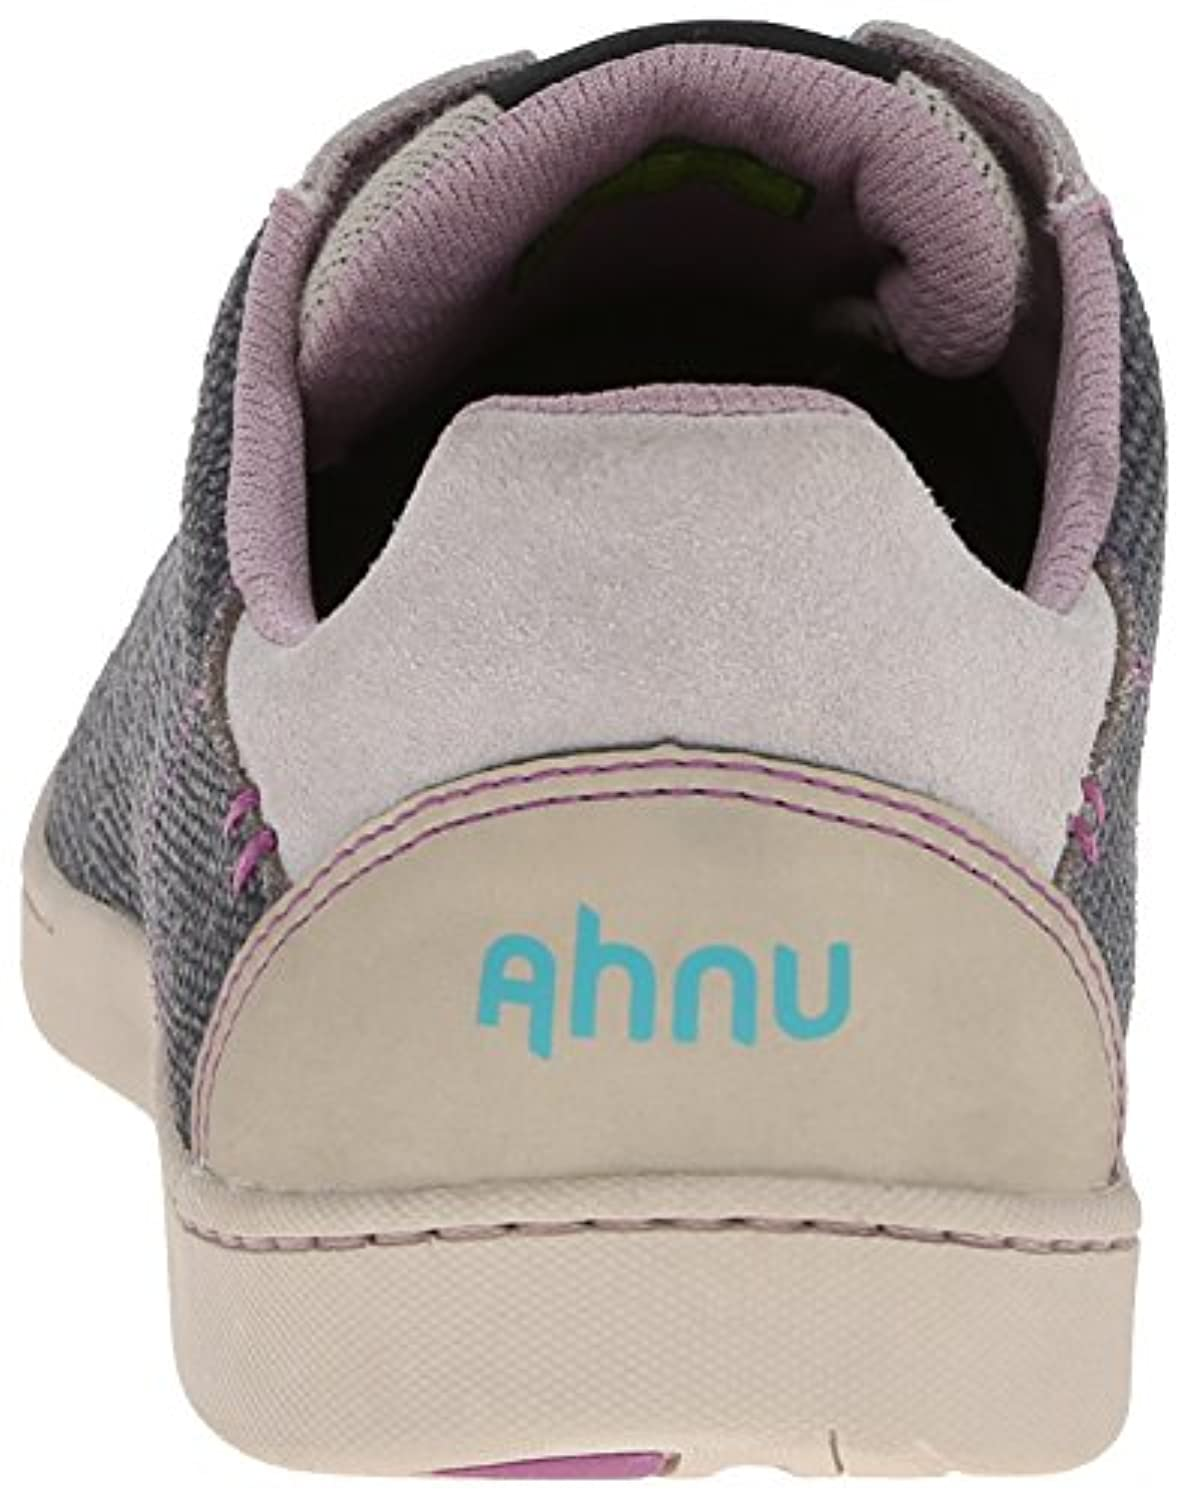 Ahnu Women's Noe Leather Oxford, Goat, 9 M US